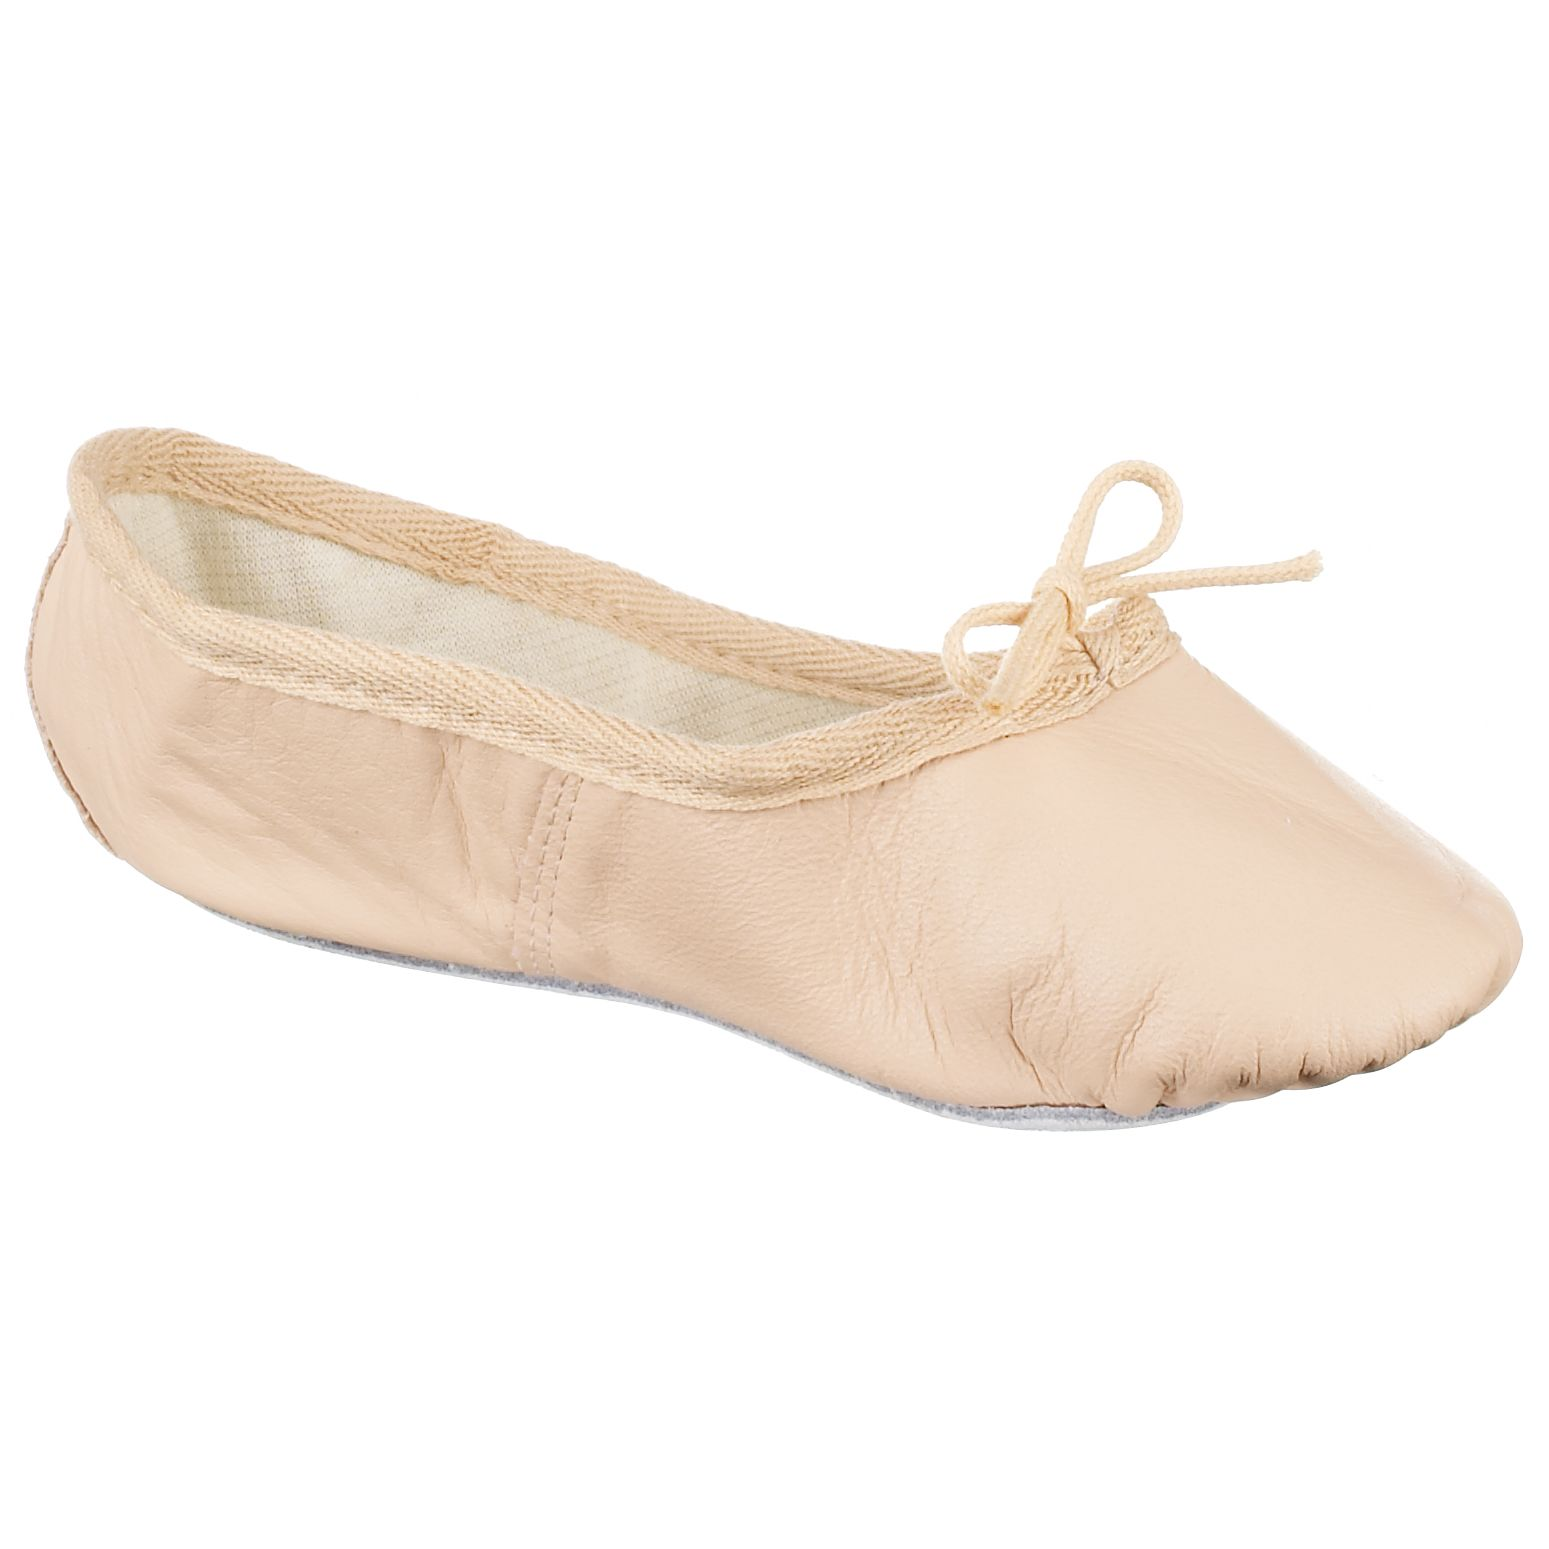 John Lewis Girl Leather Ballet Shoes, Salmon 43802